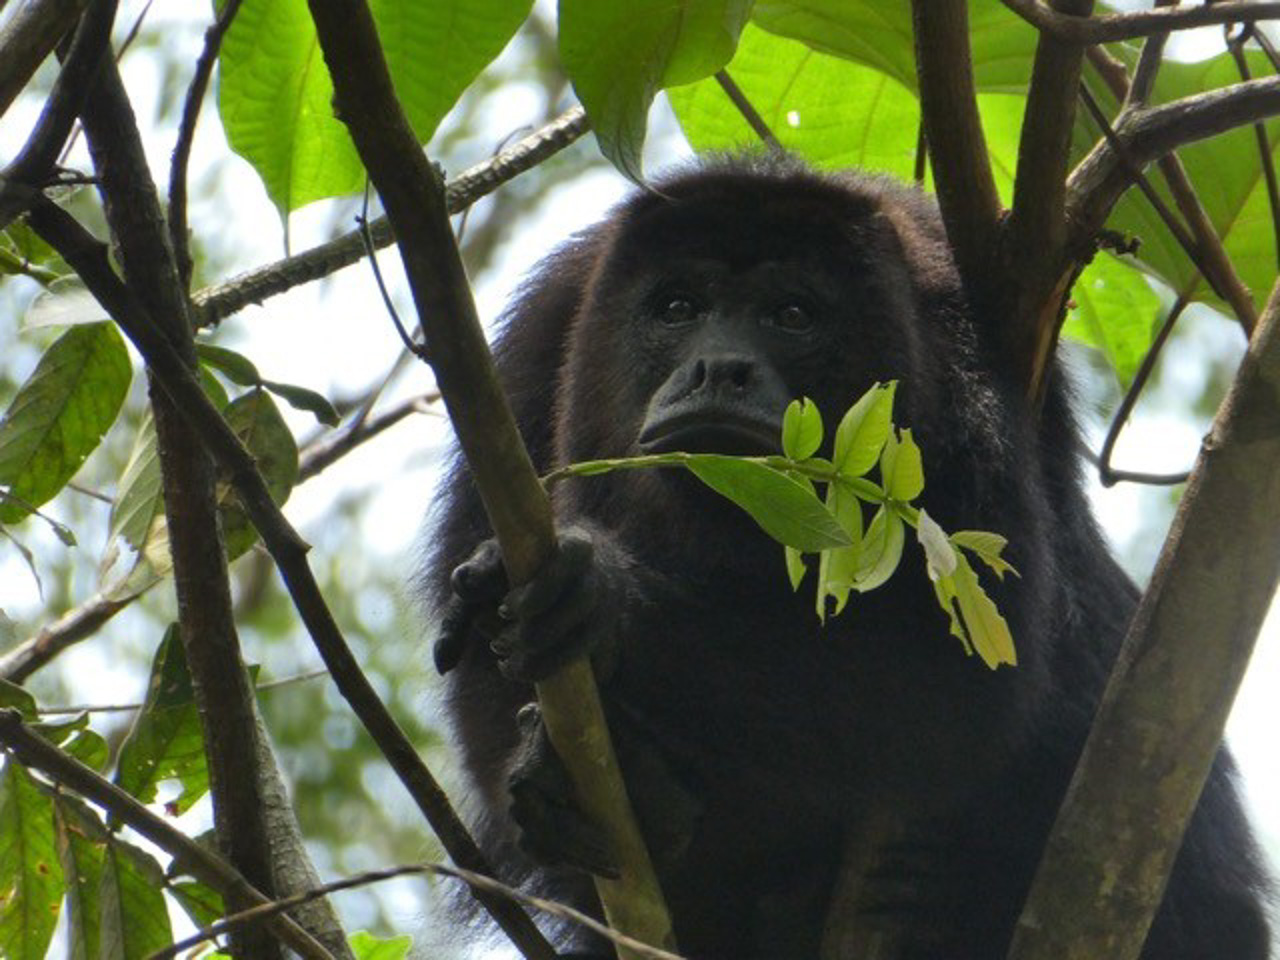 howler monkeys booming in belize sanctuary 25 years after translocation